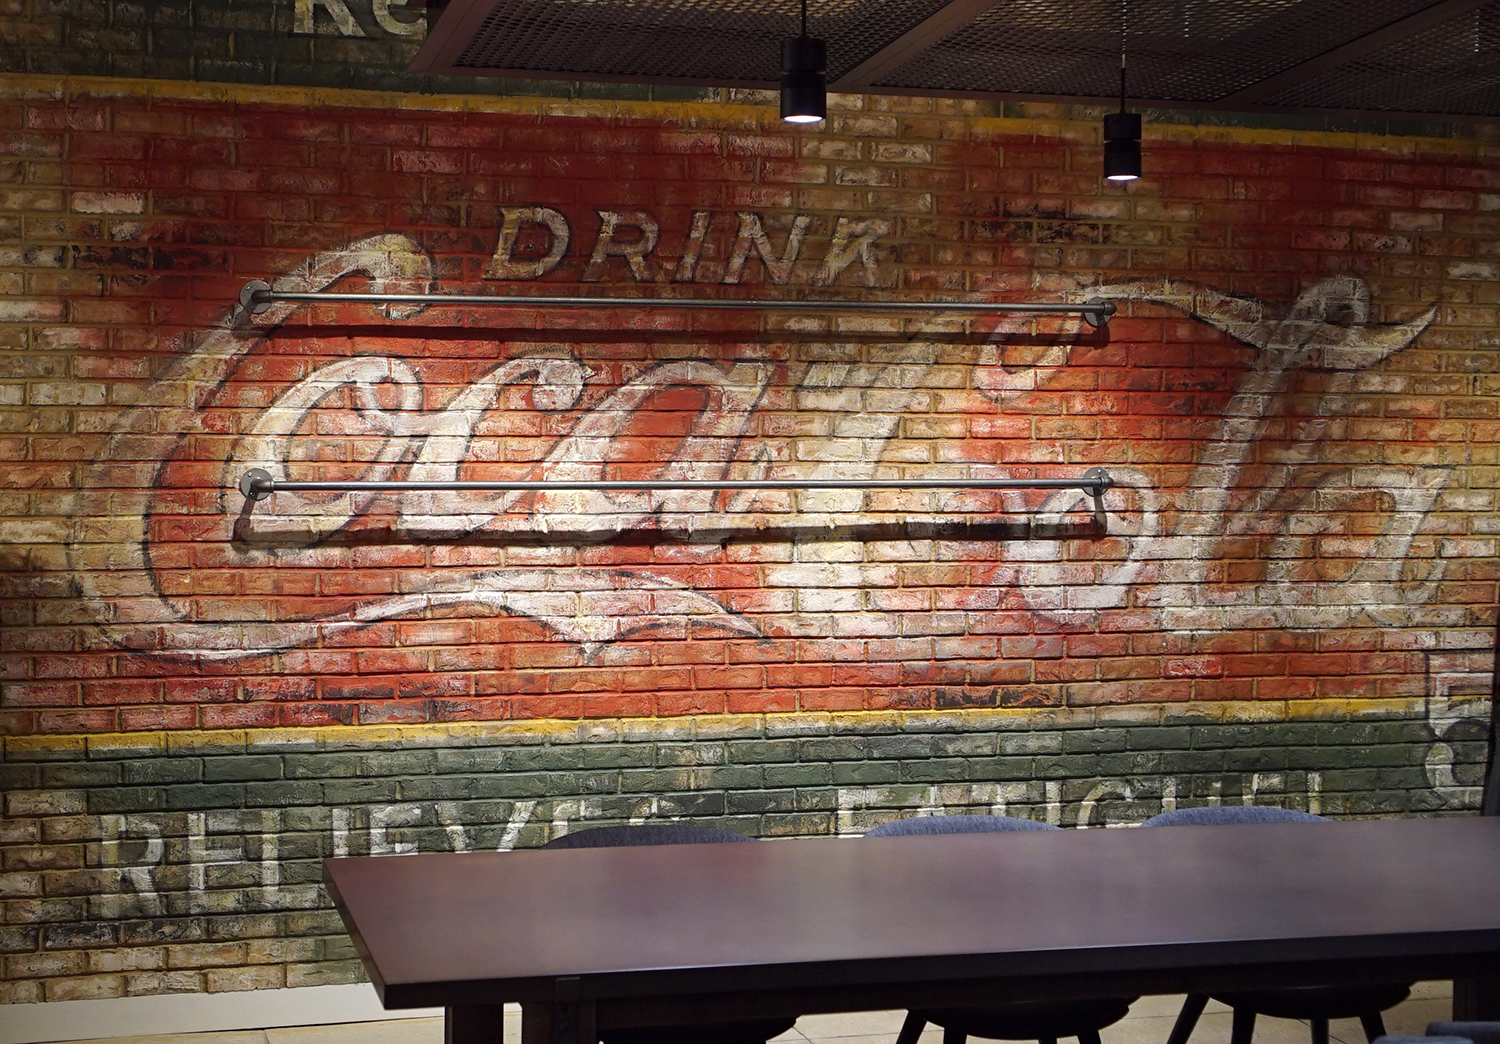 Hand Painted Lettering - Old Coke Ads